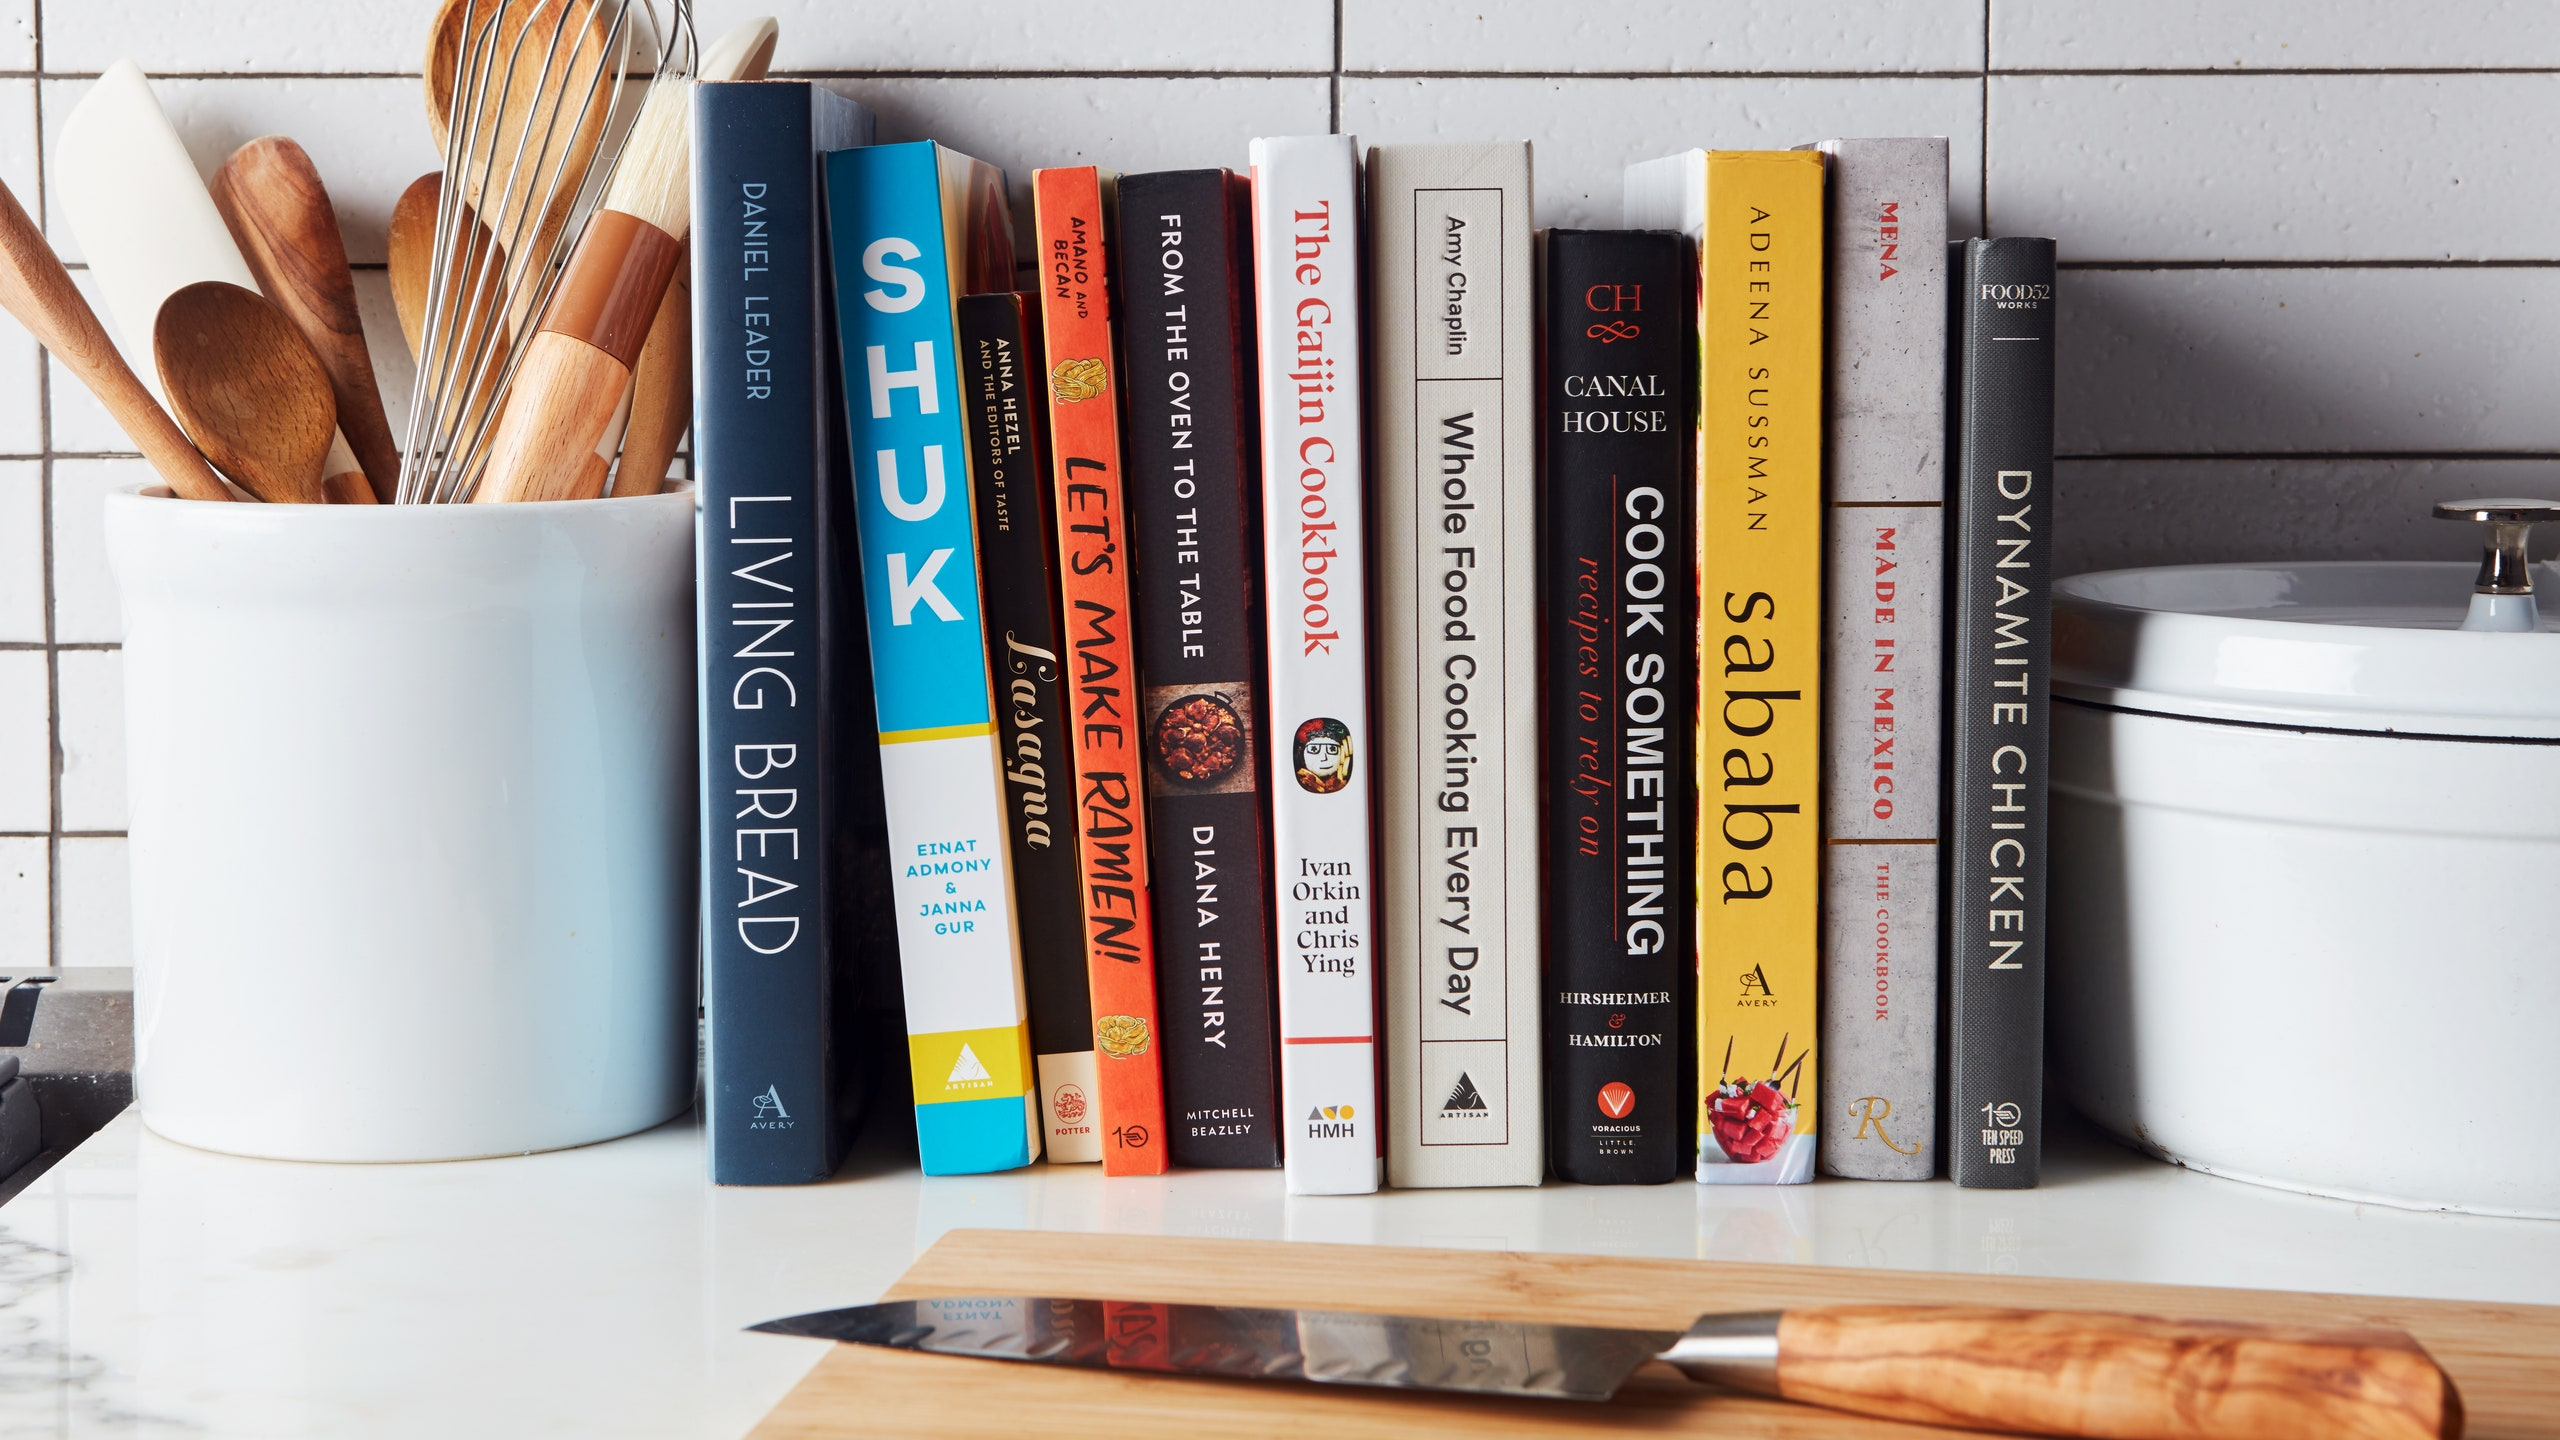 Cookbooks arranged on a countertop